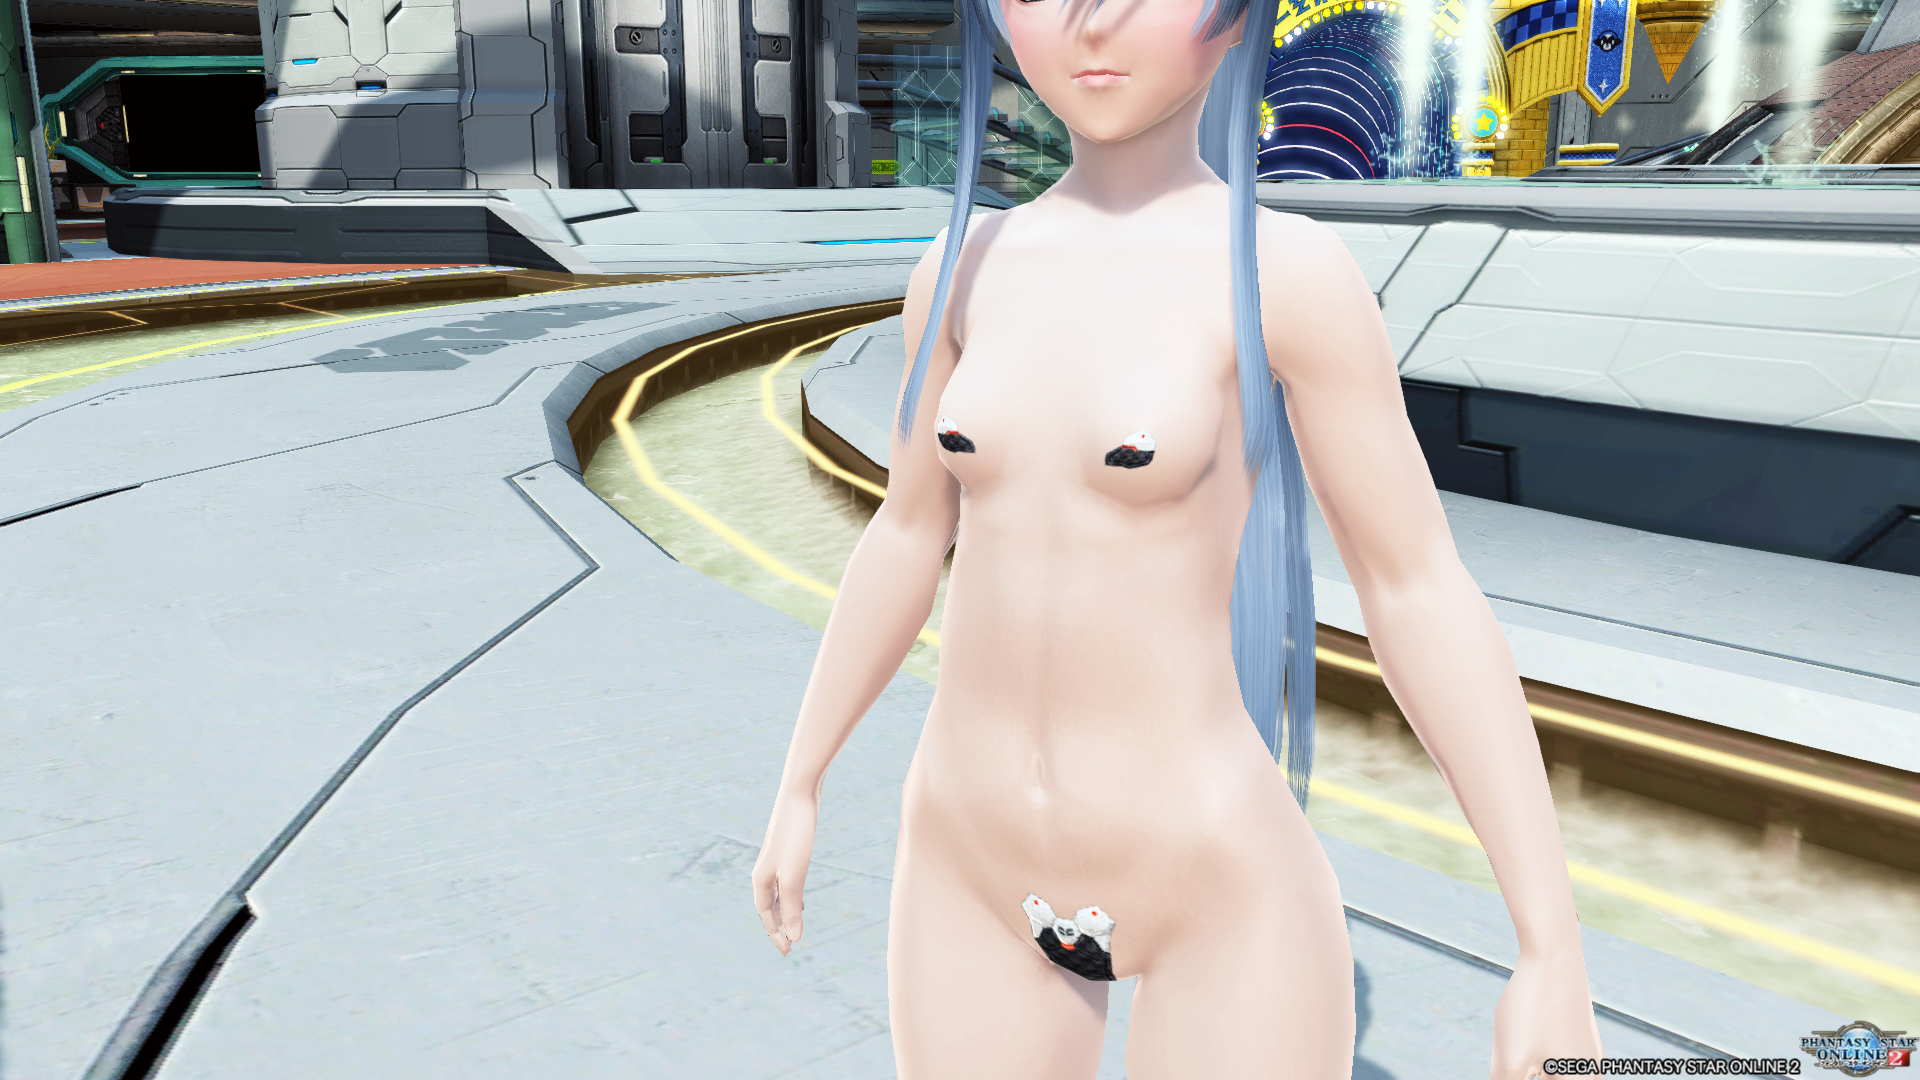 pso20160422_000016_004.png